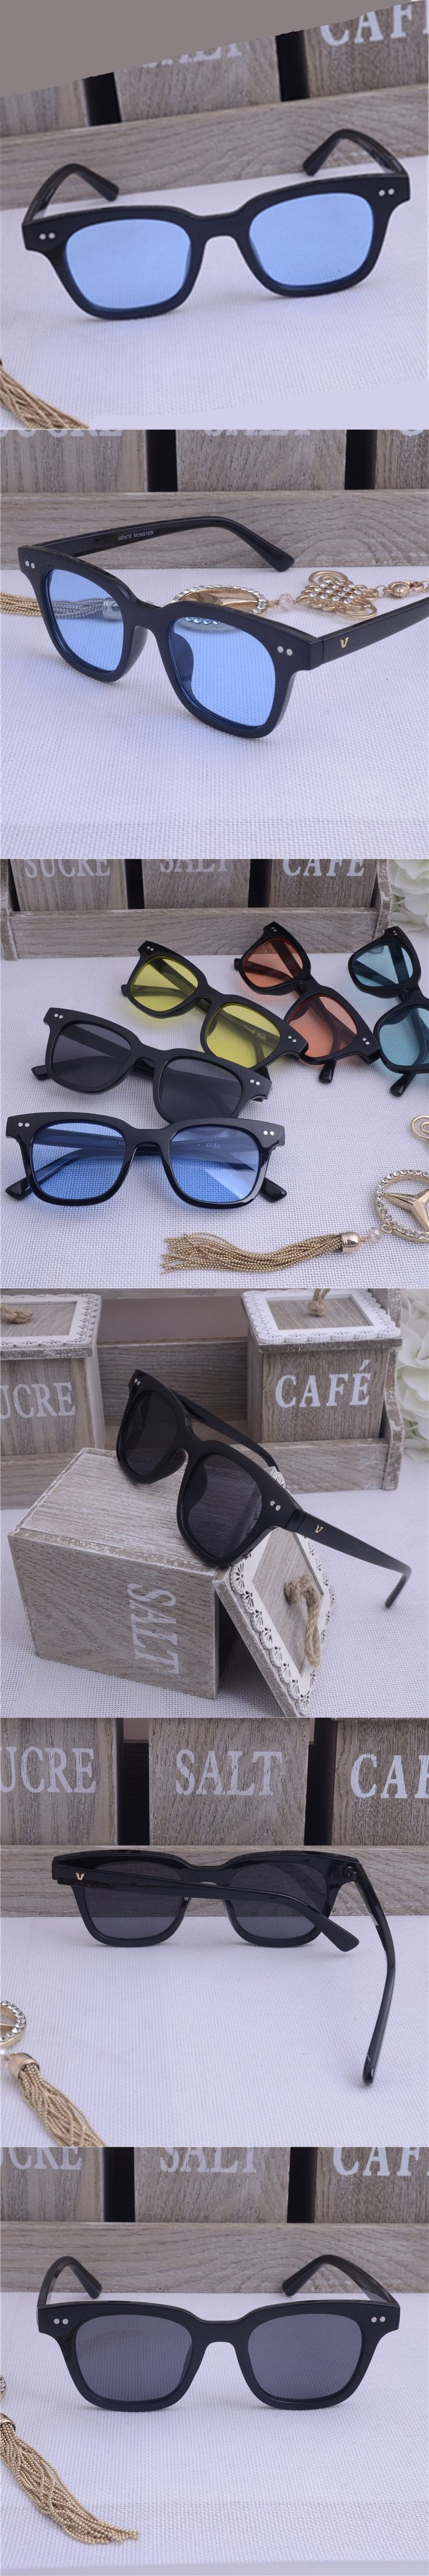 2017 new men's fashion sunglasses high-end luxury watches glasses glasses brand design UV400 sunglasses round large frame retro